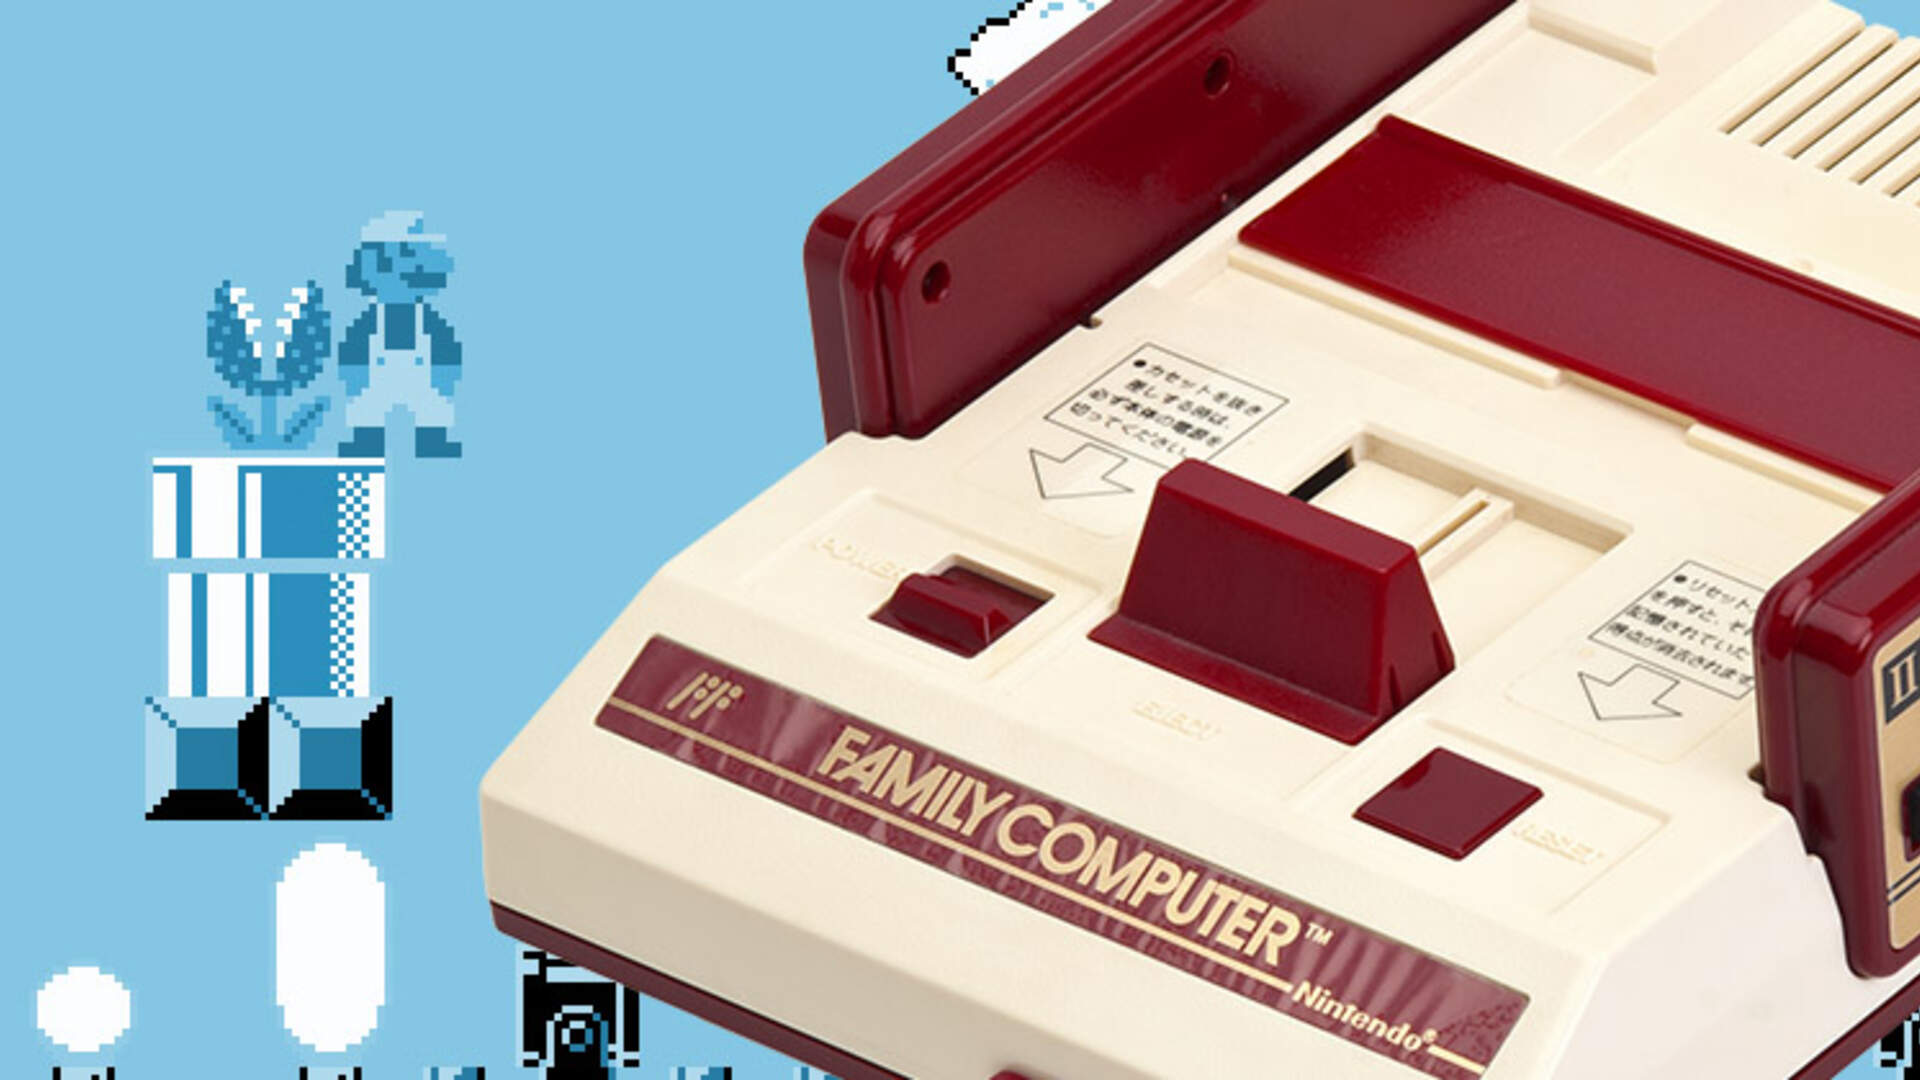 Essential Famicom Games from the Pre-NES Days